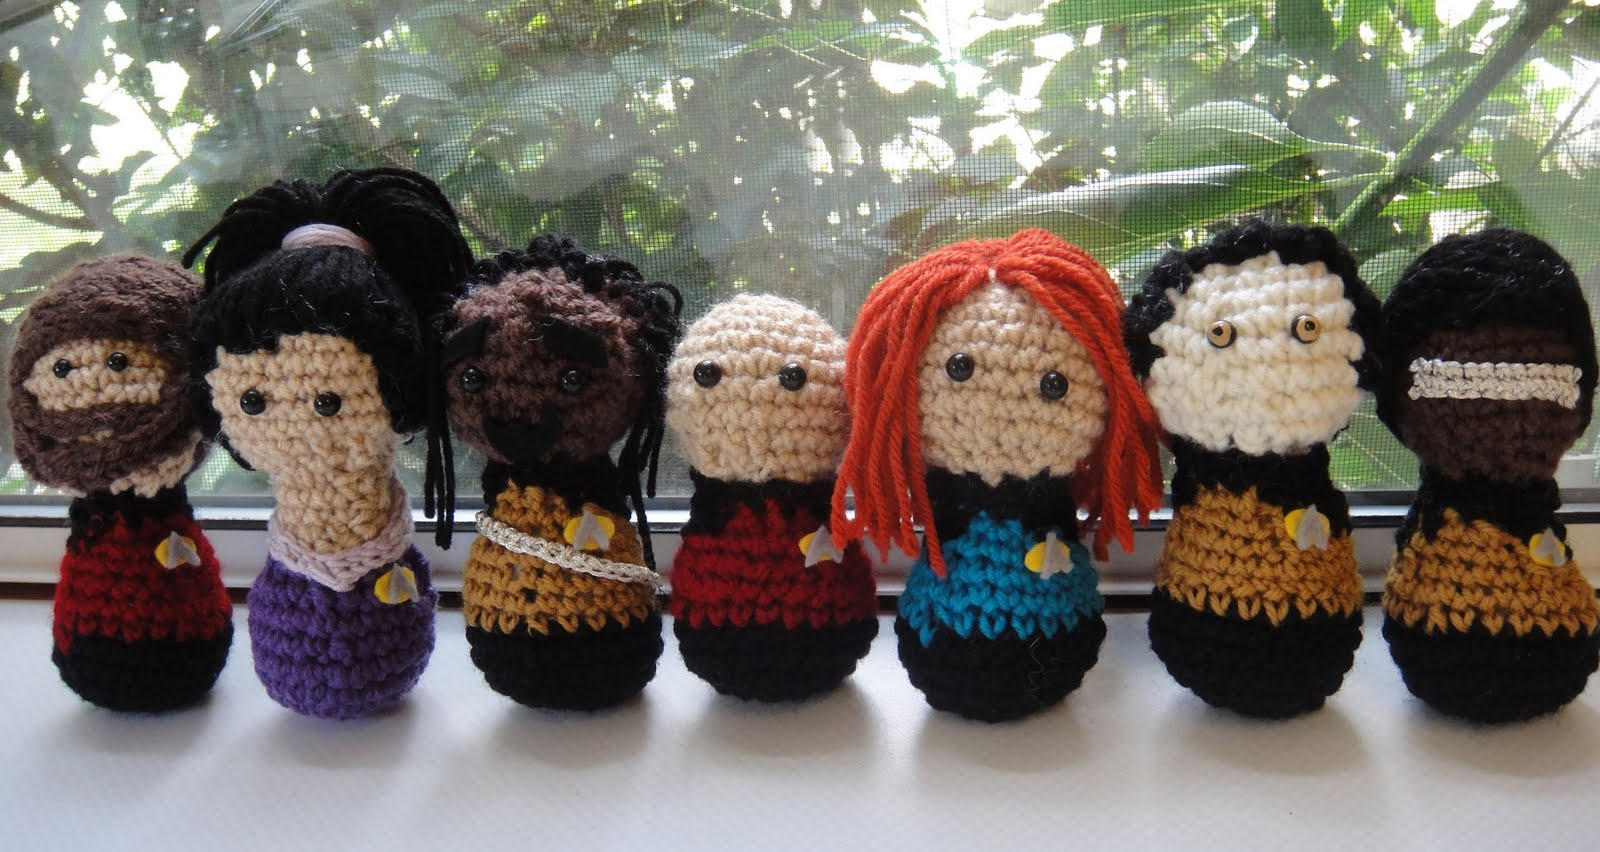 Star Trek: The Next Generation Cast Created Using Yarn